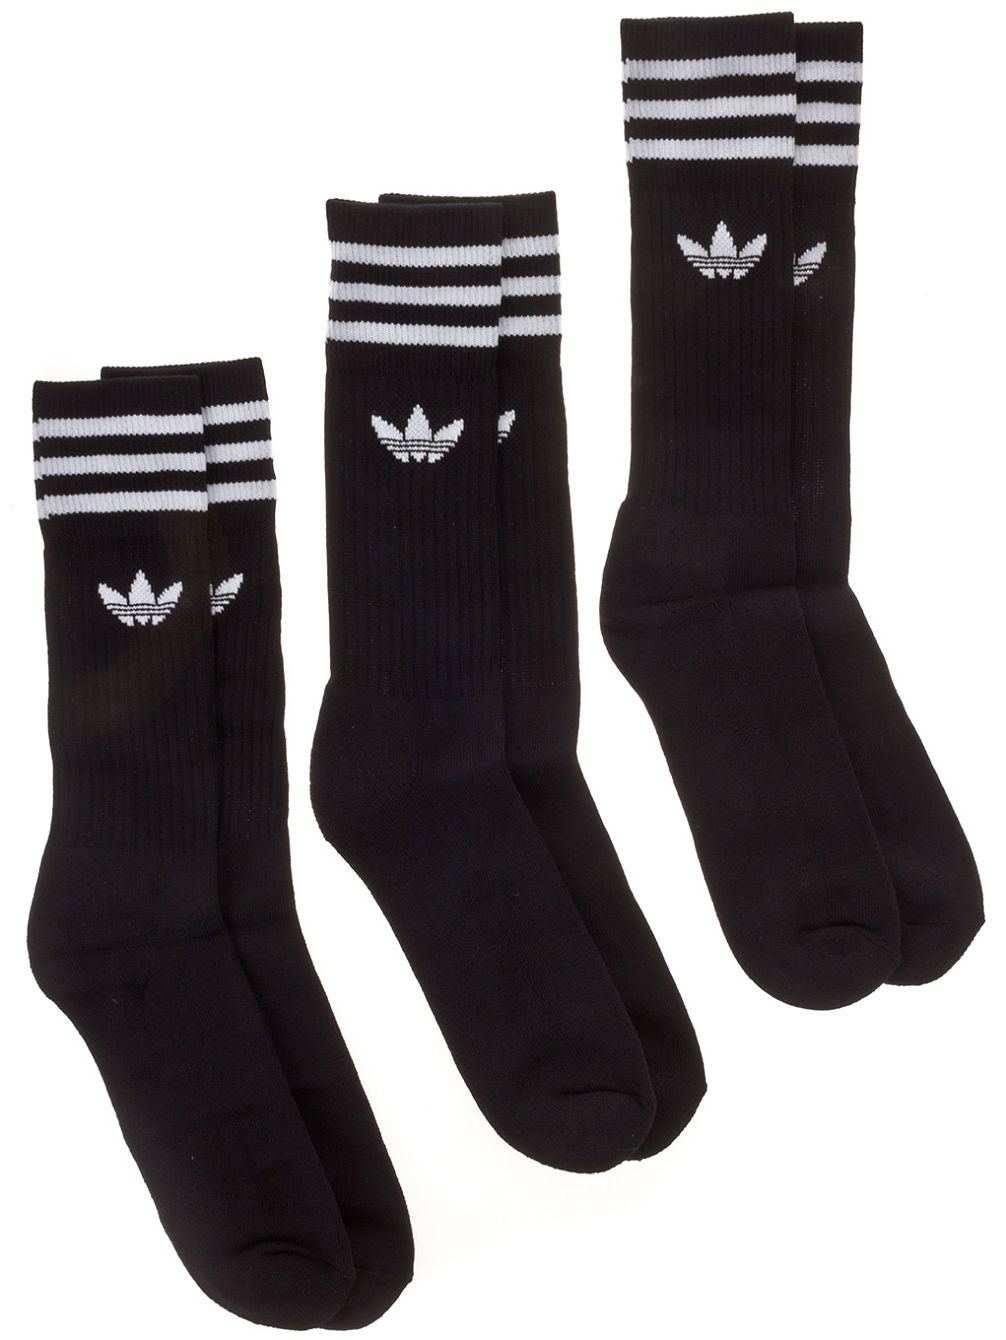 Solid Crew 3 Pack Socks